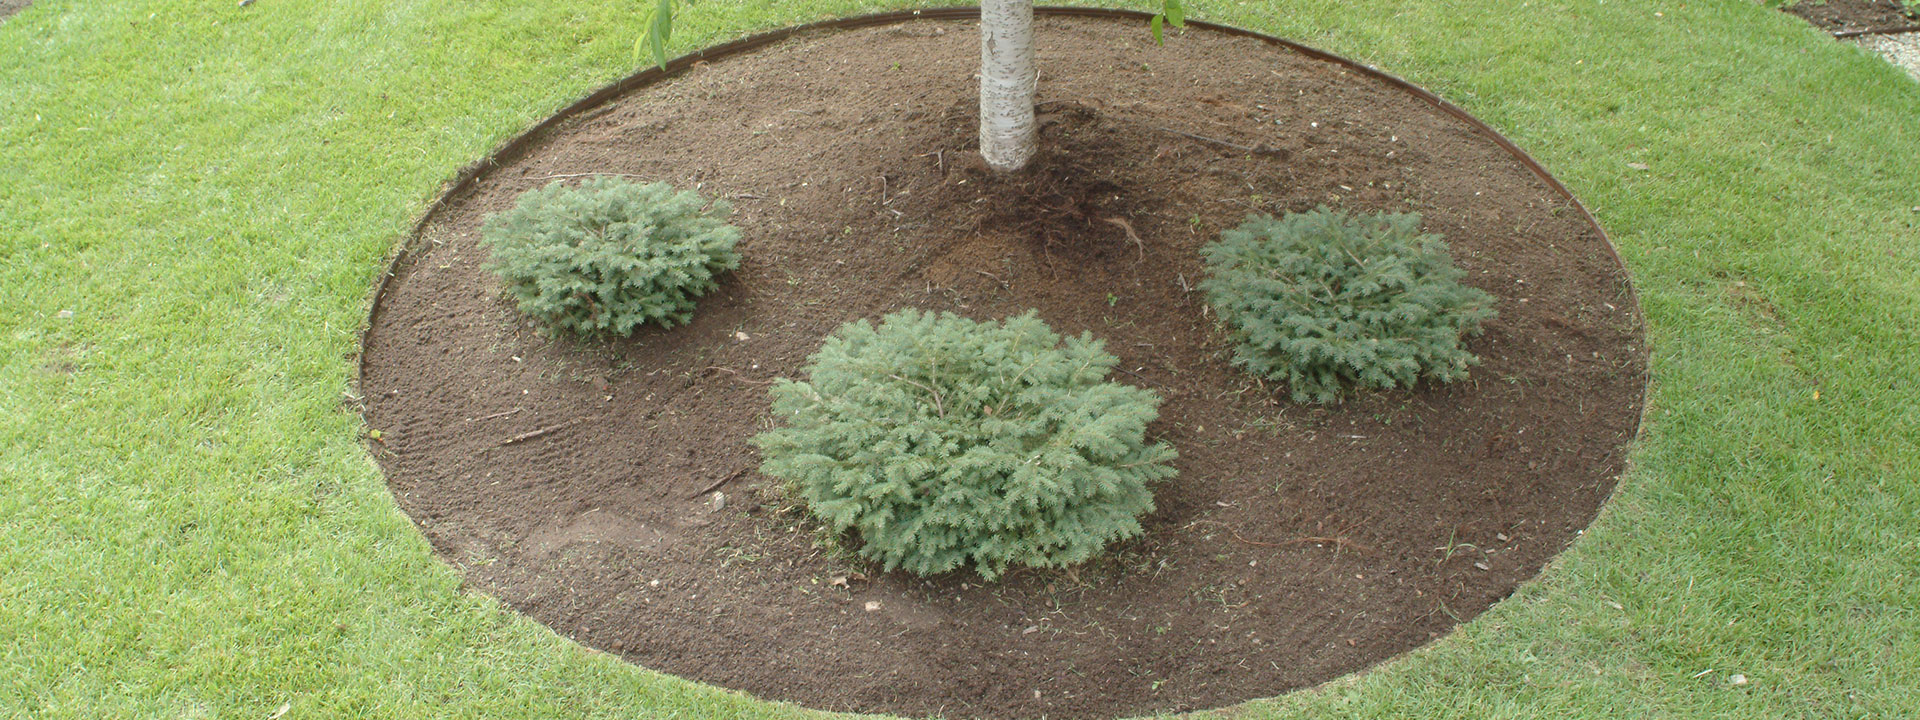 Landscape edging and also path edging and also brick garden edging and also garden trim